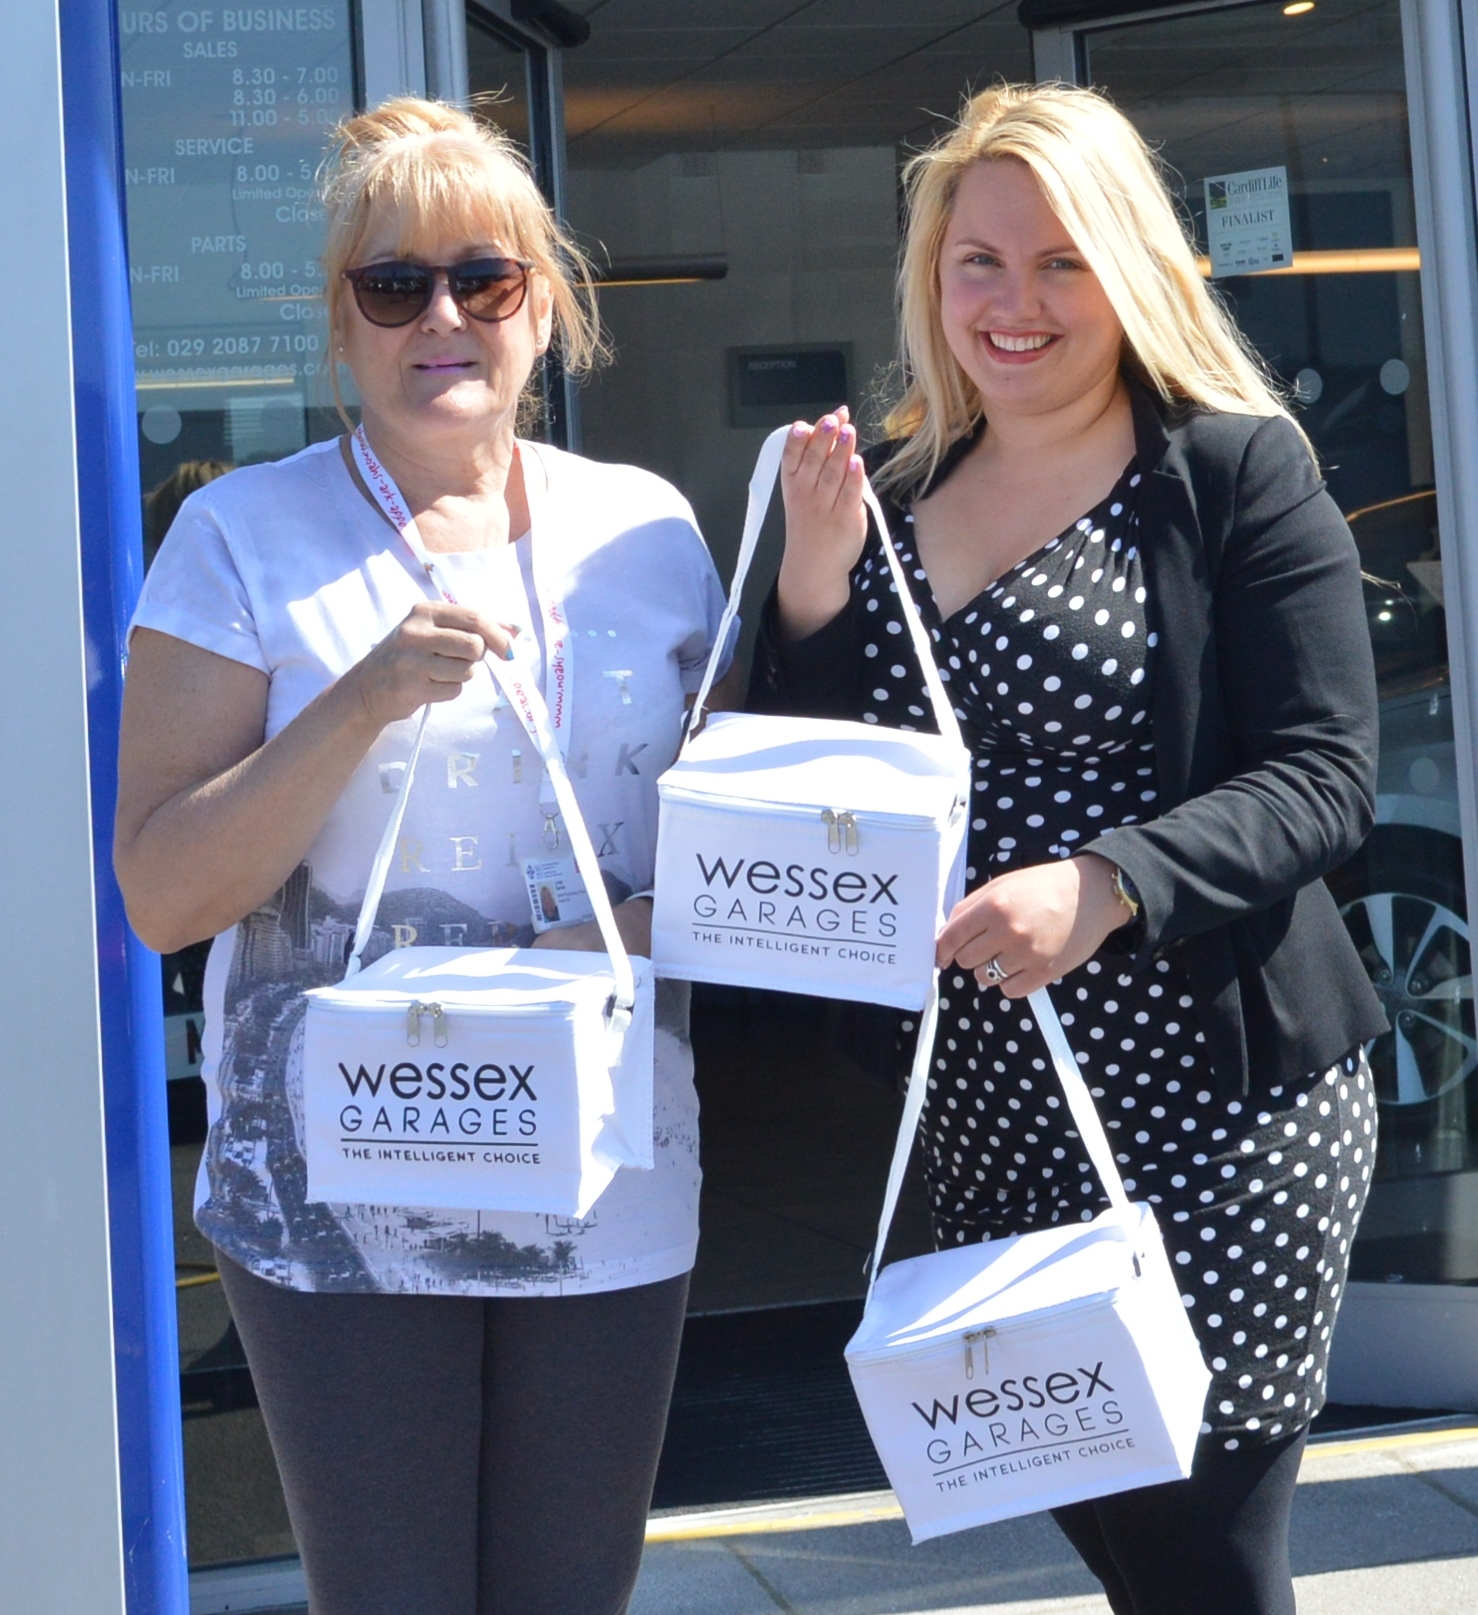 (From left to right) Linda Davies, Senior Fundraising Officer at Noah's Ark Children's Hospital Charity and Ugne Briedyte, Digital Sales Executive at Wessex Garages, with some of the cool bags.